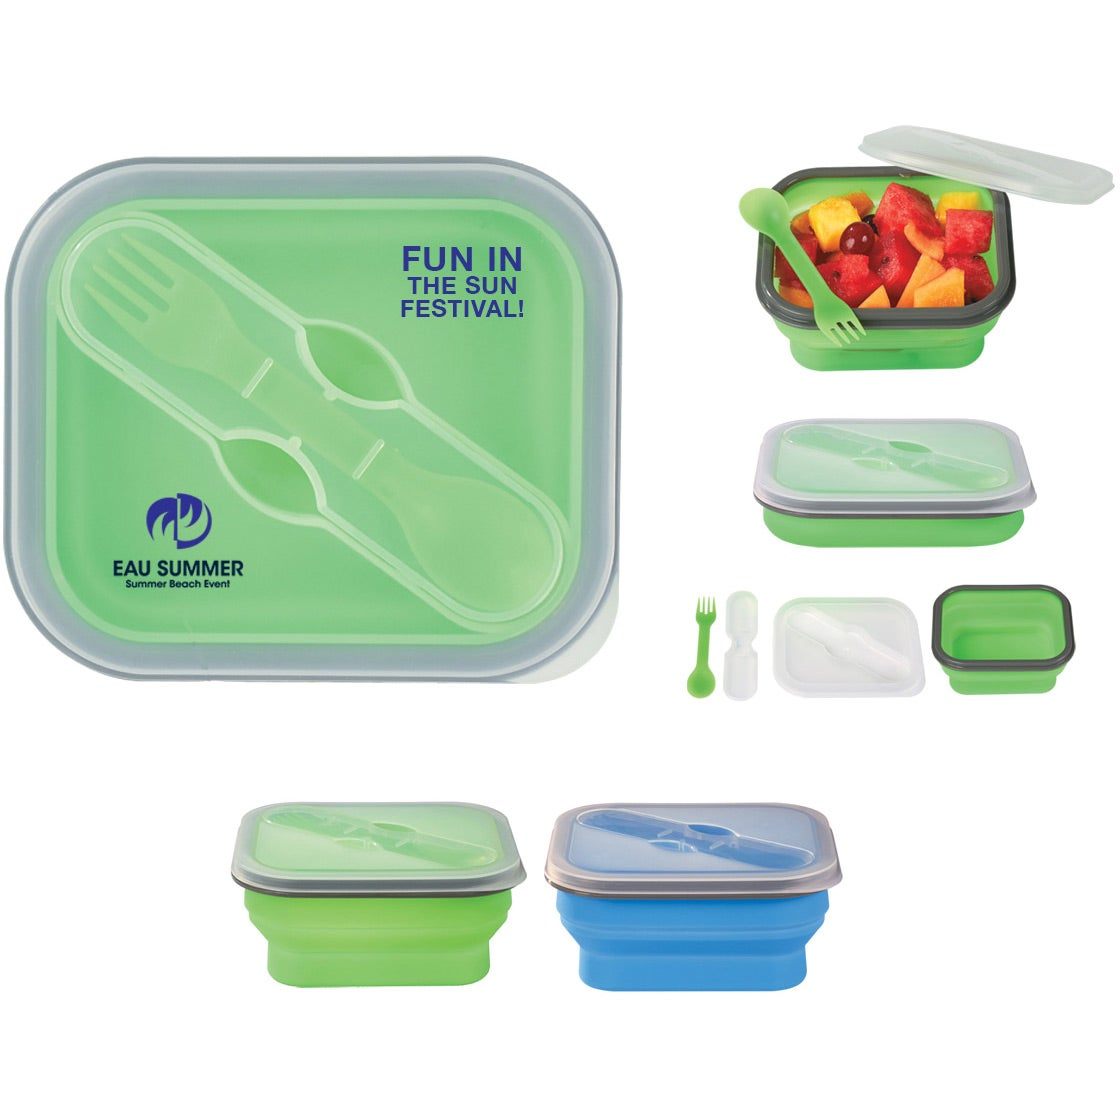 Group Photo Collapsible Food Container with Dual Utensil Customized  sc 1 st  Quality Logo Products & Promotional Collapsible Food Container with Dual Utensils with ...